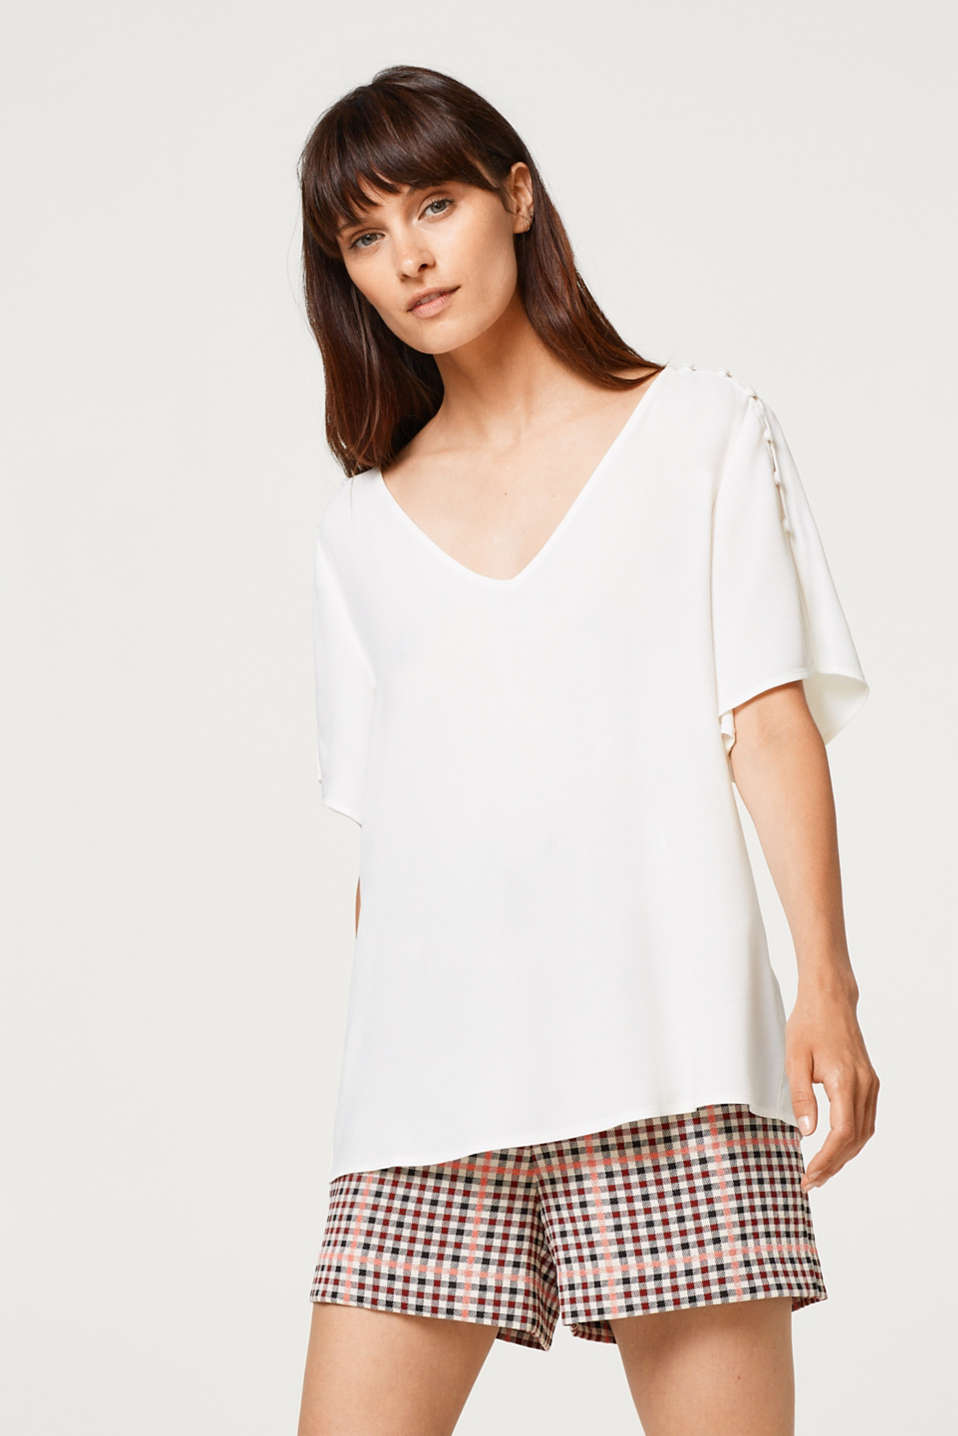 Esprit - Crêpe blouse top with embellished sleeves